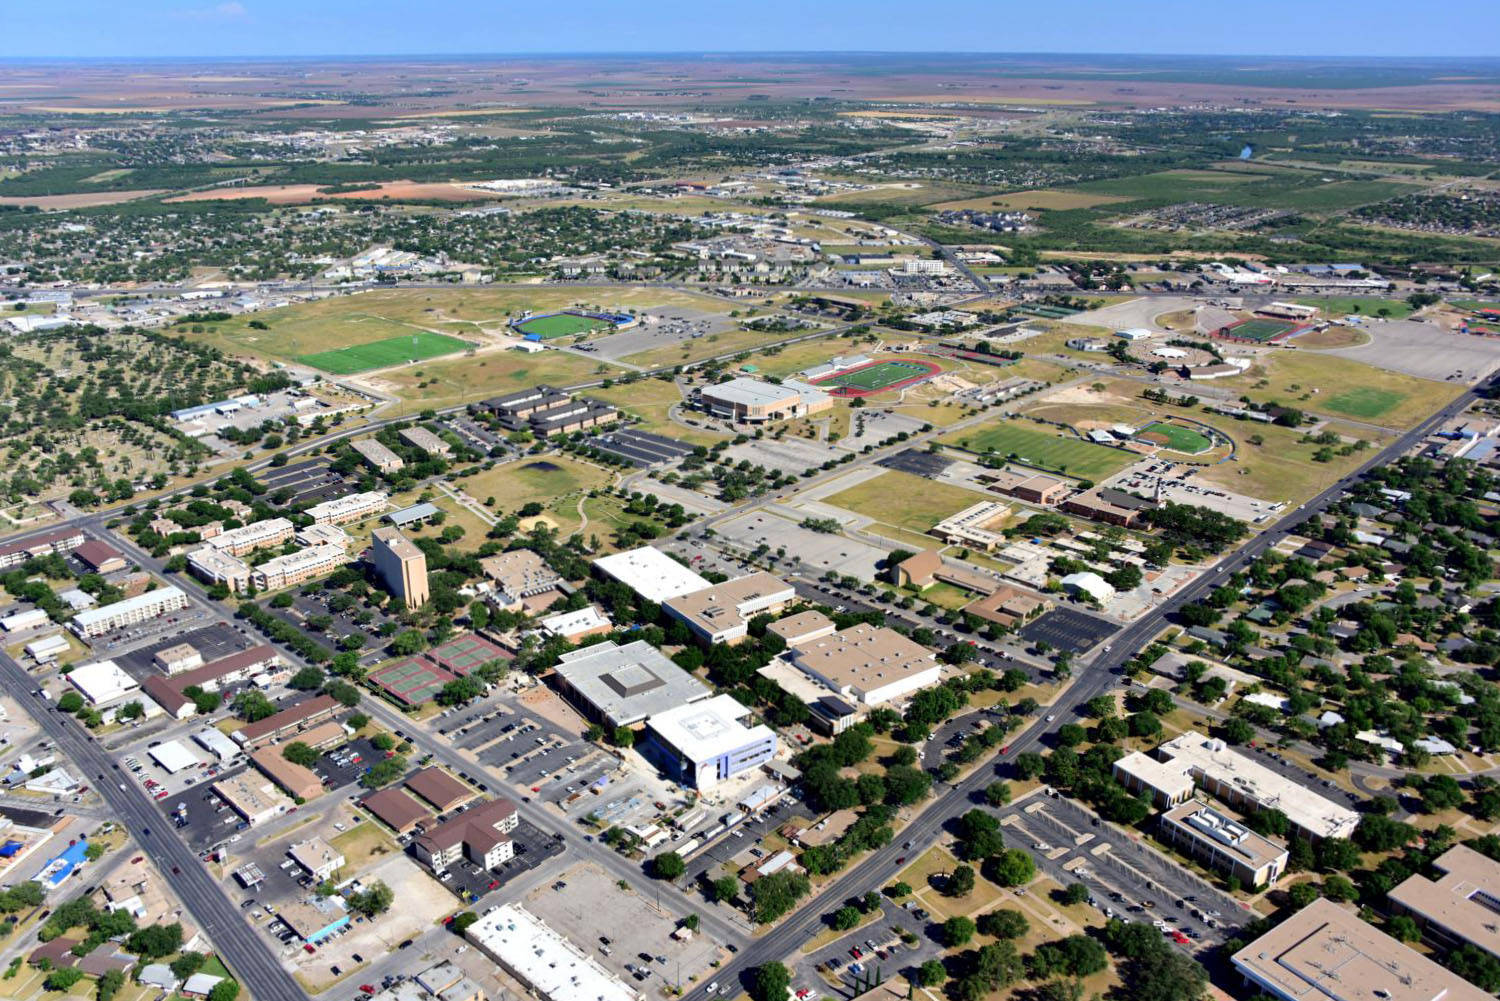 Angelo State University - San Angelo Aerial Photographer - Aerial Drone Image - Aerial Drone Video - San Angelo, TX - West Texas